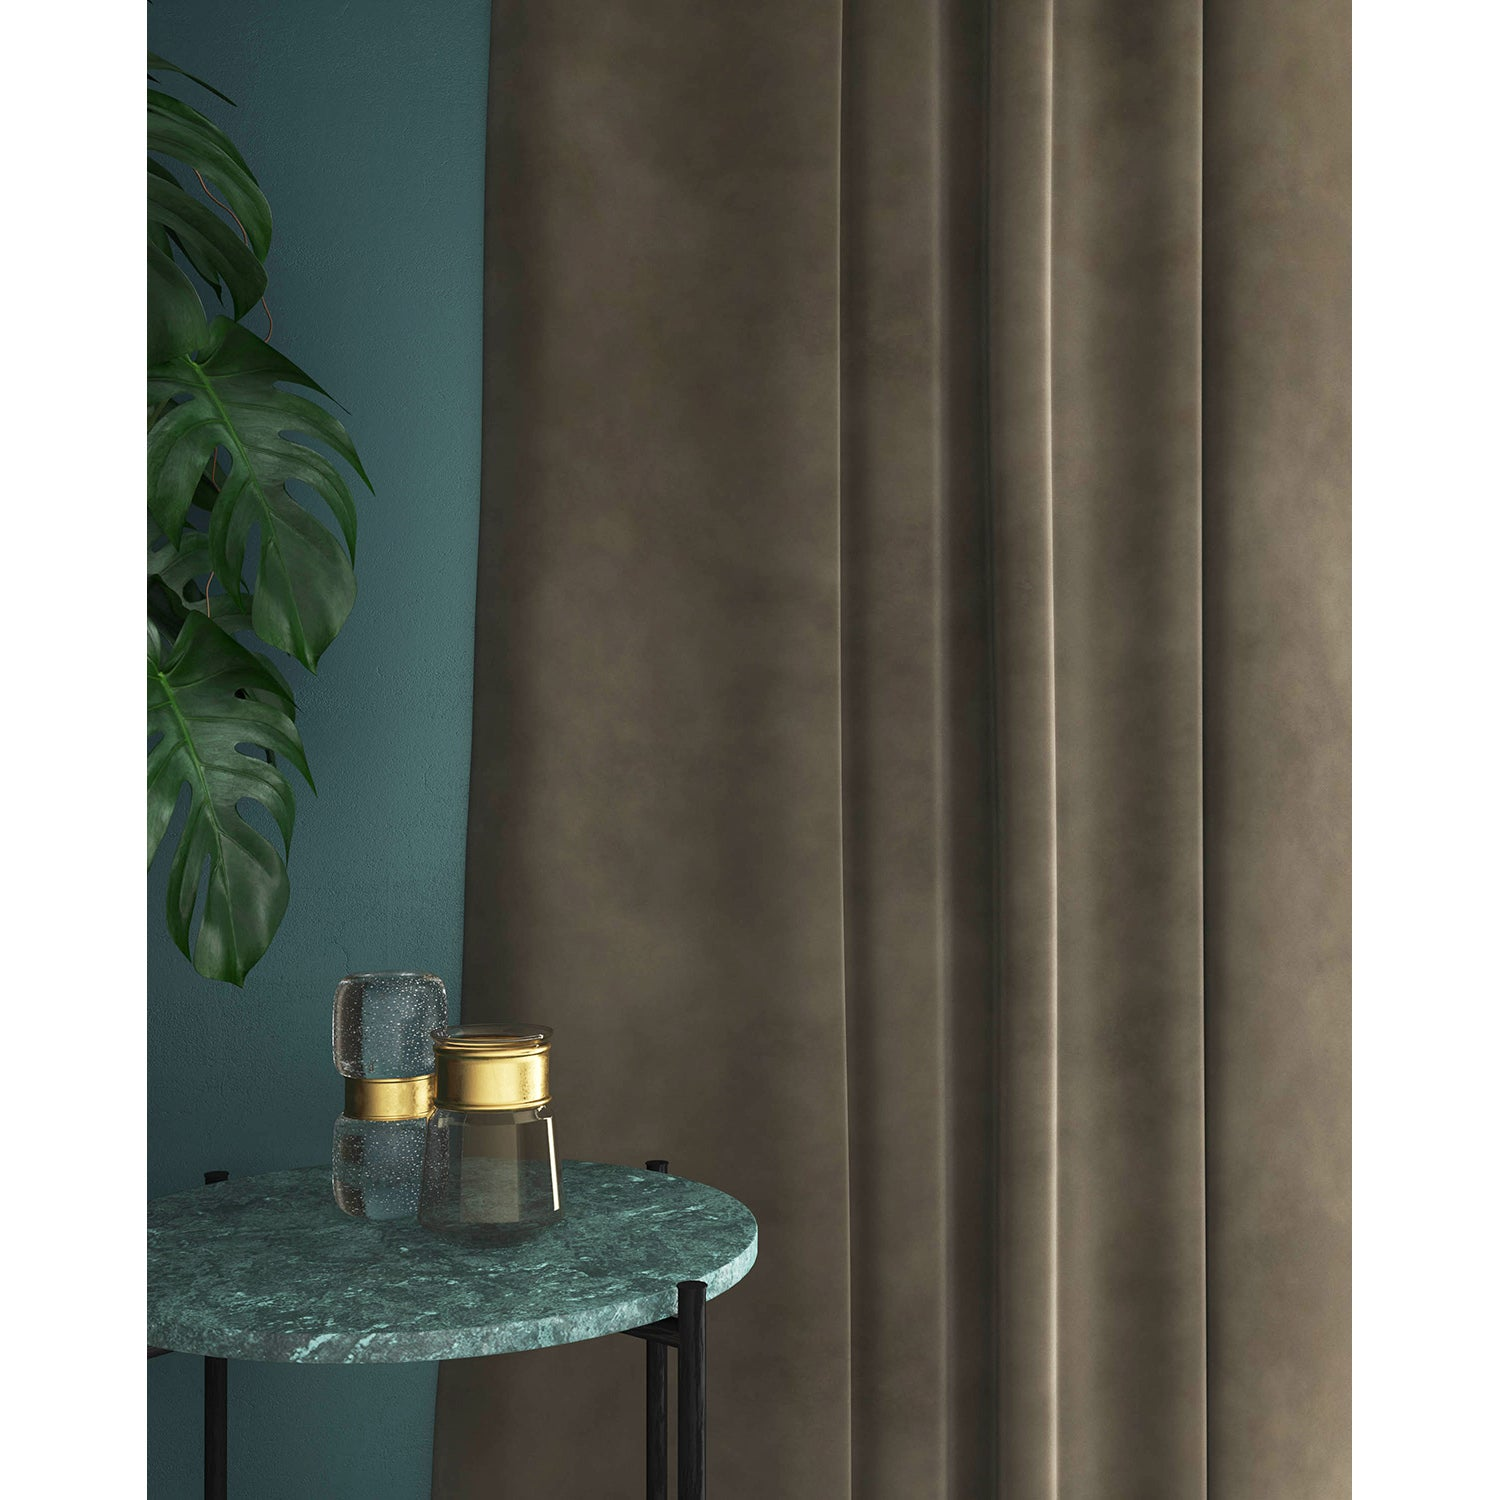 Curtains in a taupe plain velvet fabric with a stain resist finish